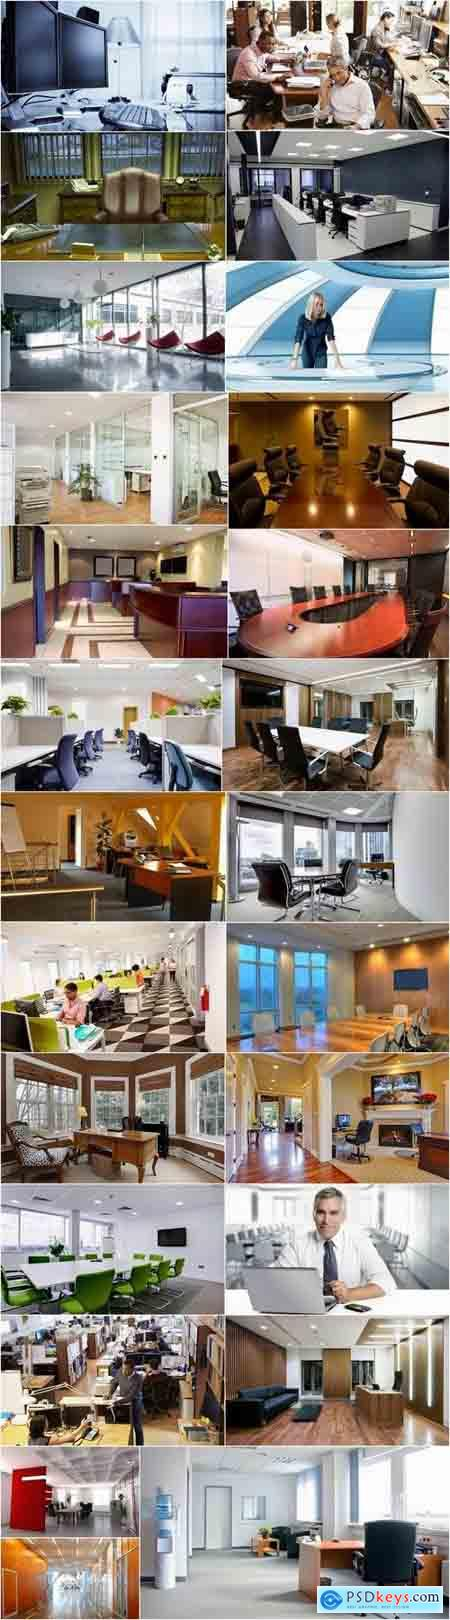 Office interior business company chair chair desk business center business firm 25 HQ Jpeg